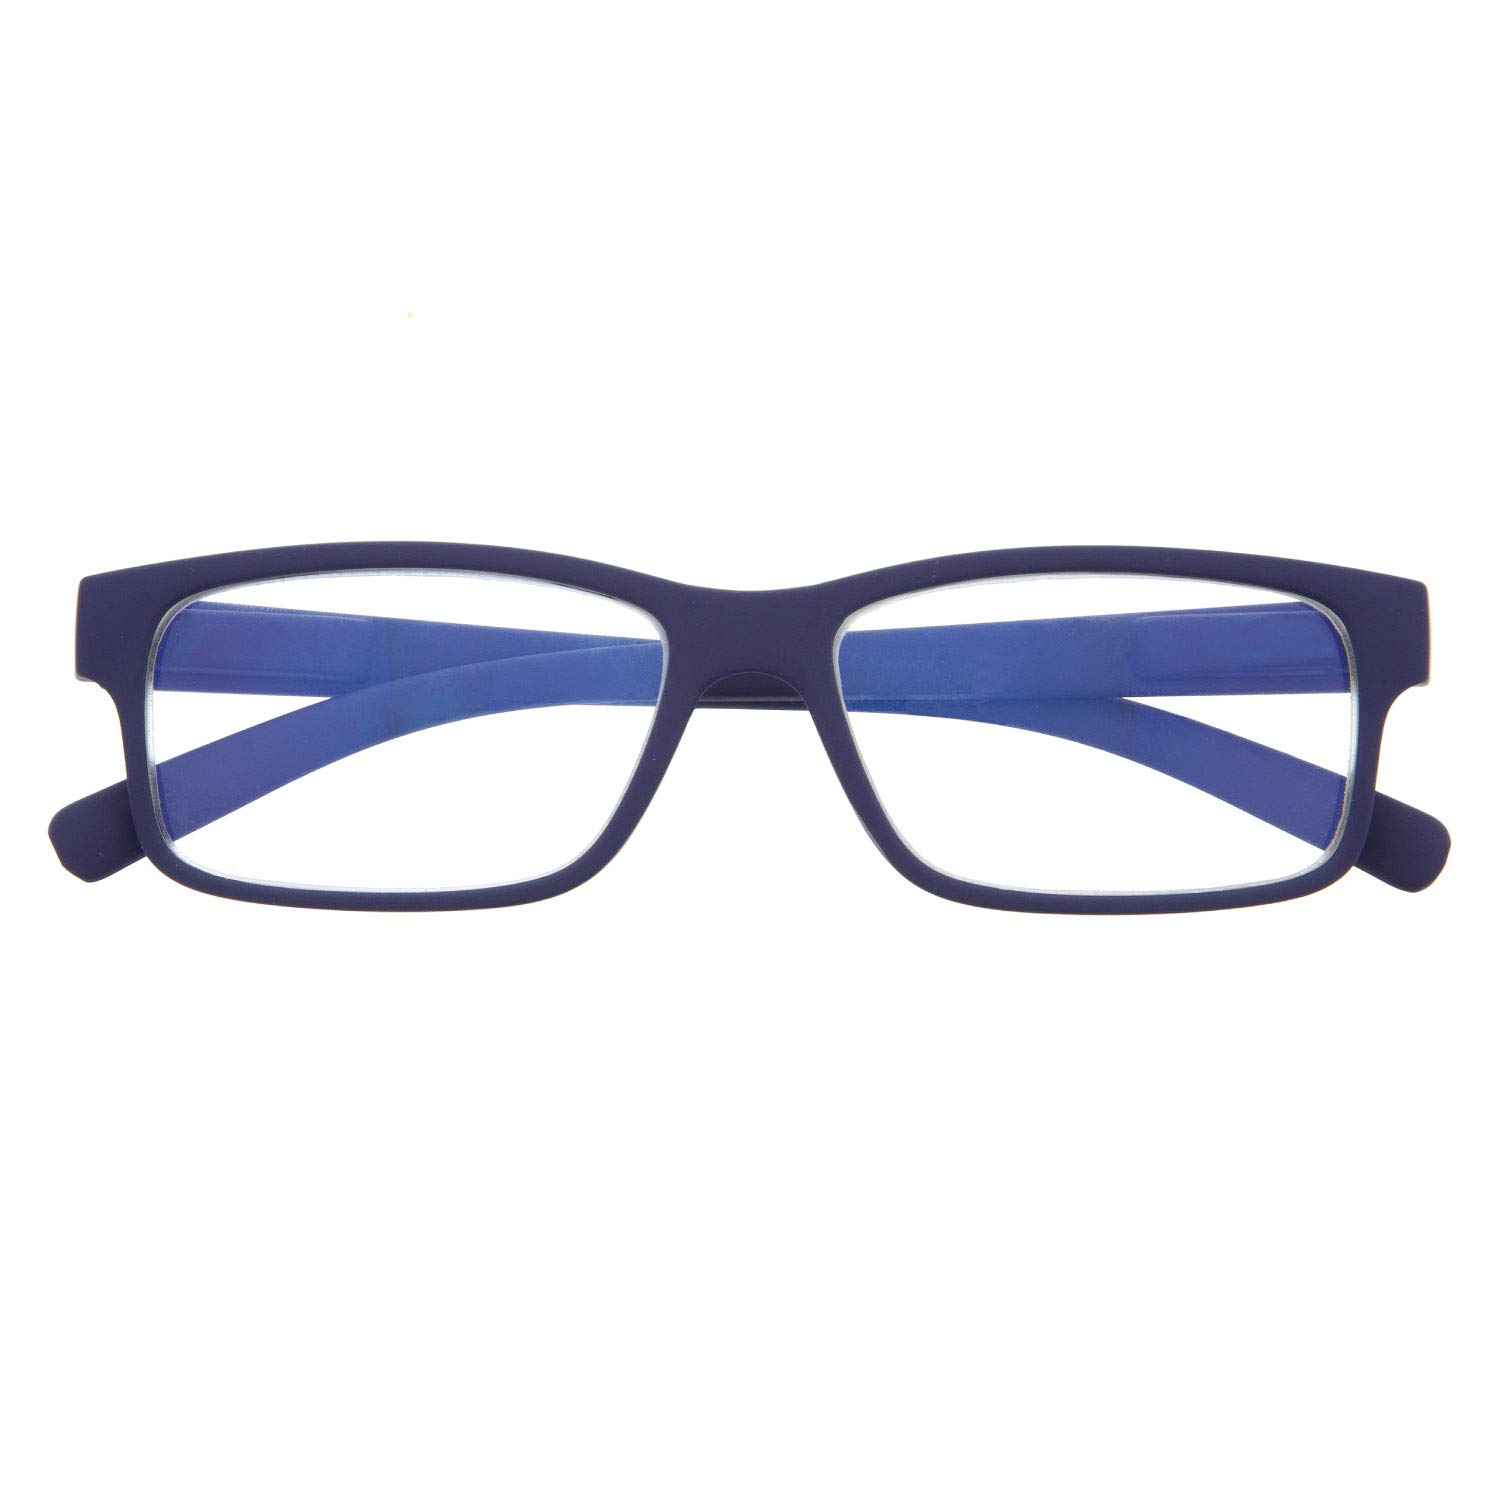 DIDINSKY Reading Glasses for Men and Women. Blue Light Blocking Computer Readers. Rubber Touch Flexible Temple and Anti Glare Glasses. Indigo 0.0 - THYSSEN